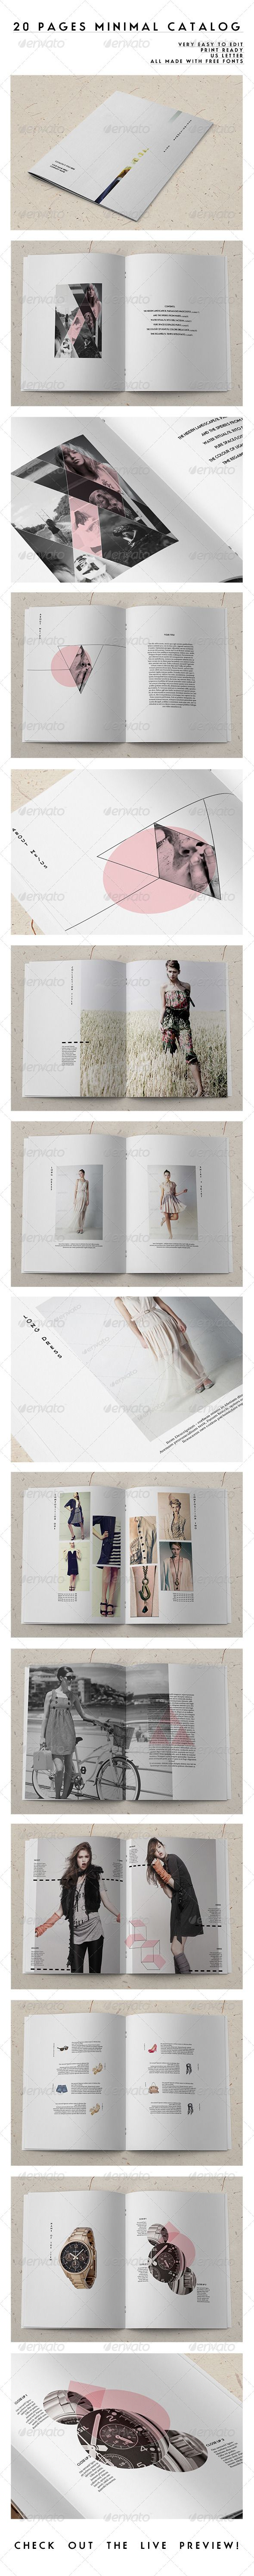 20 Pages Minimal Catalog - Catalogs Brochures